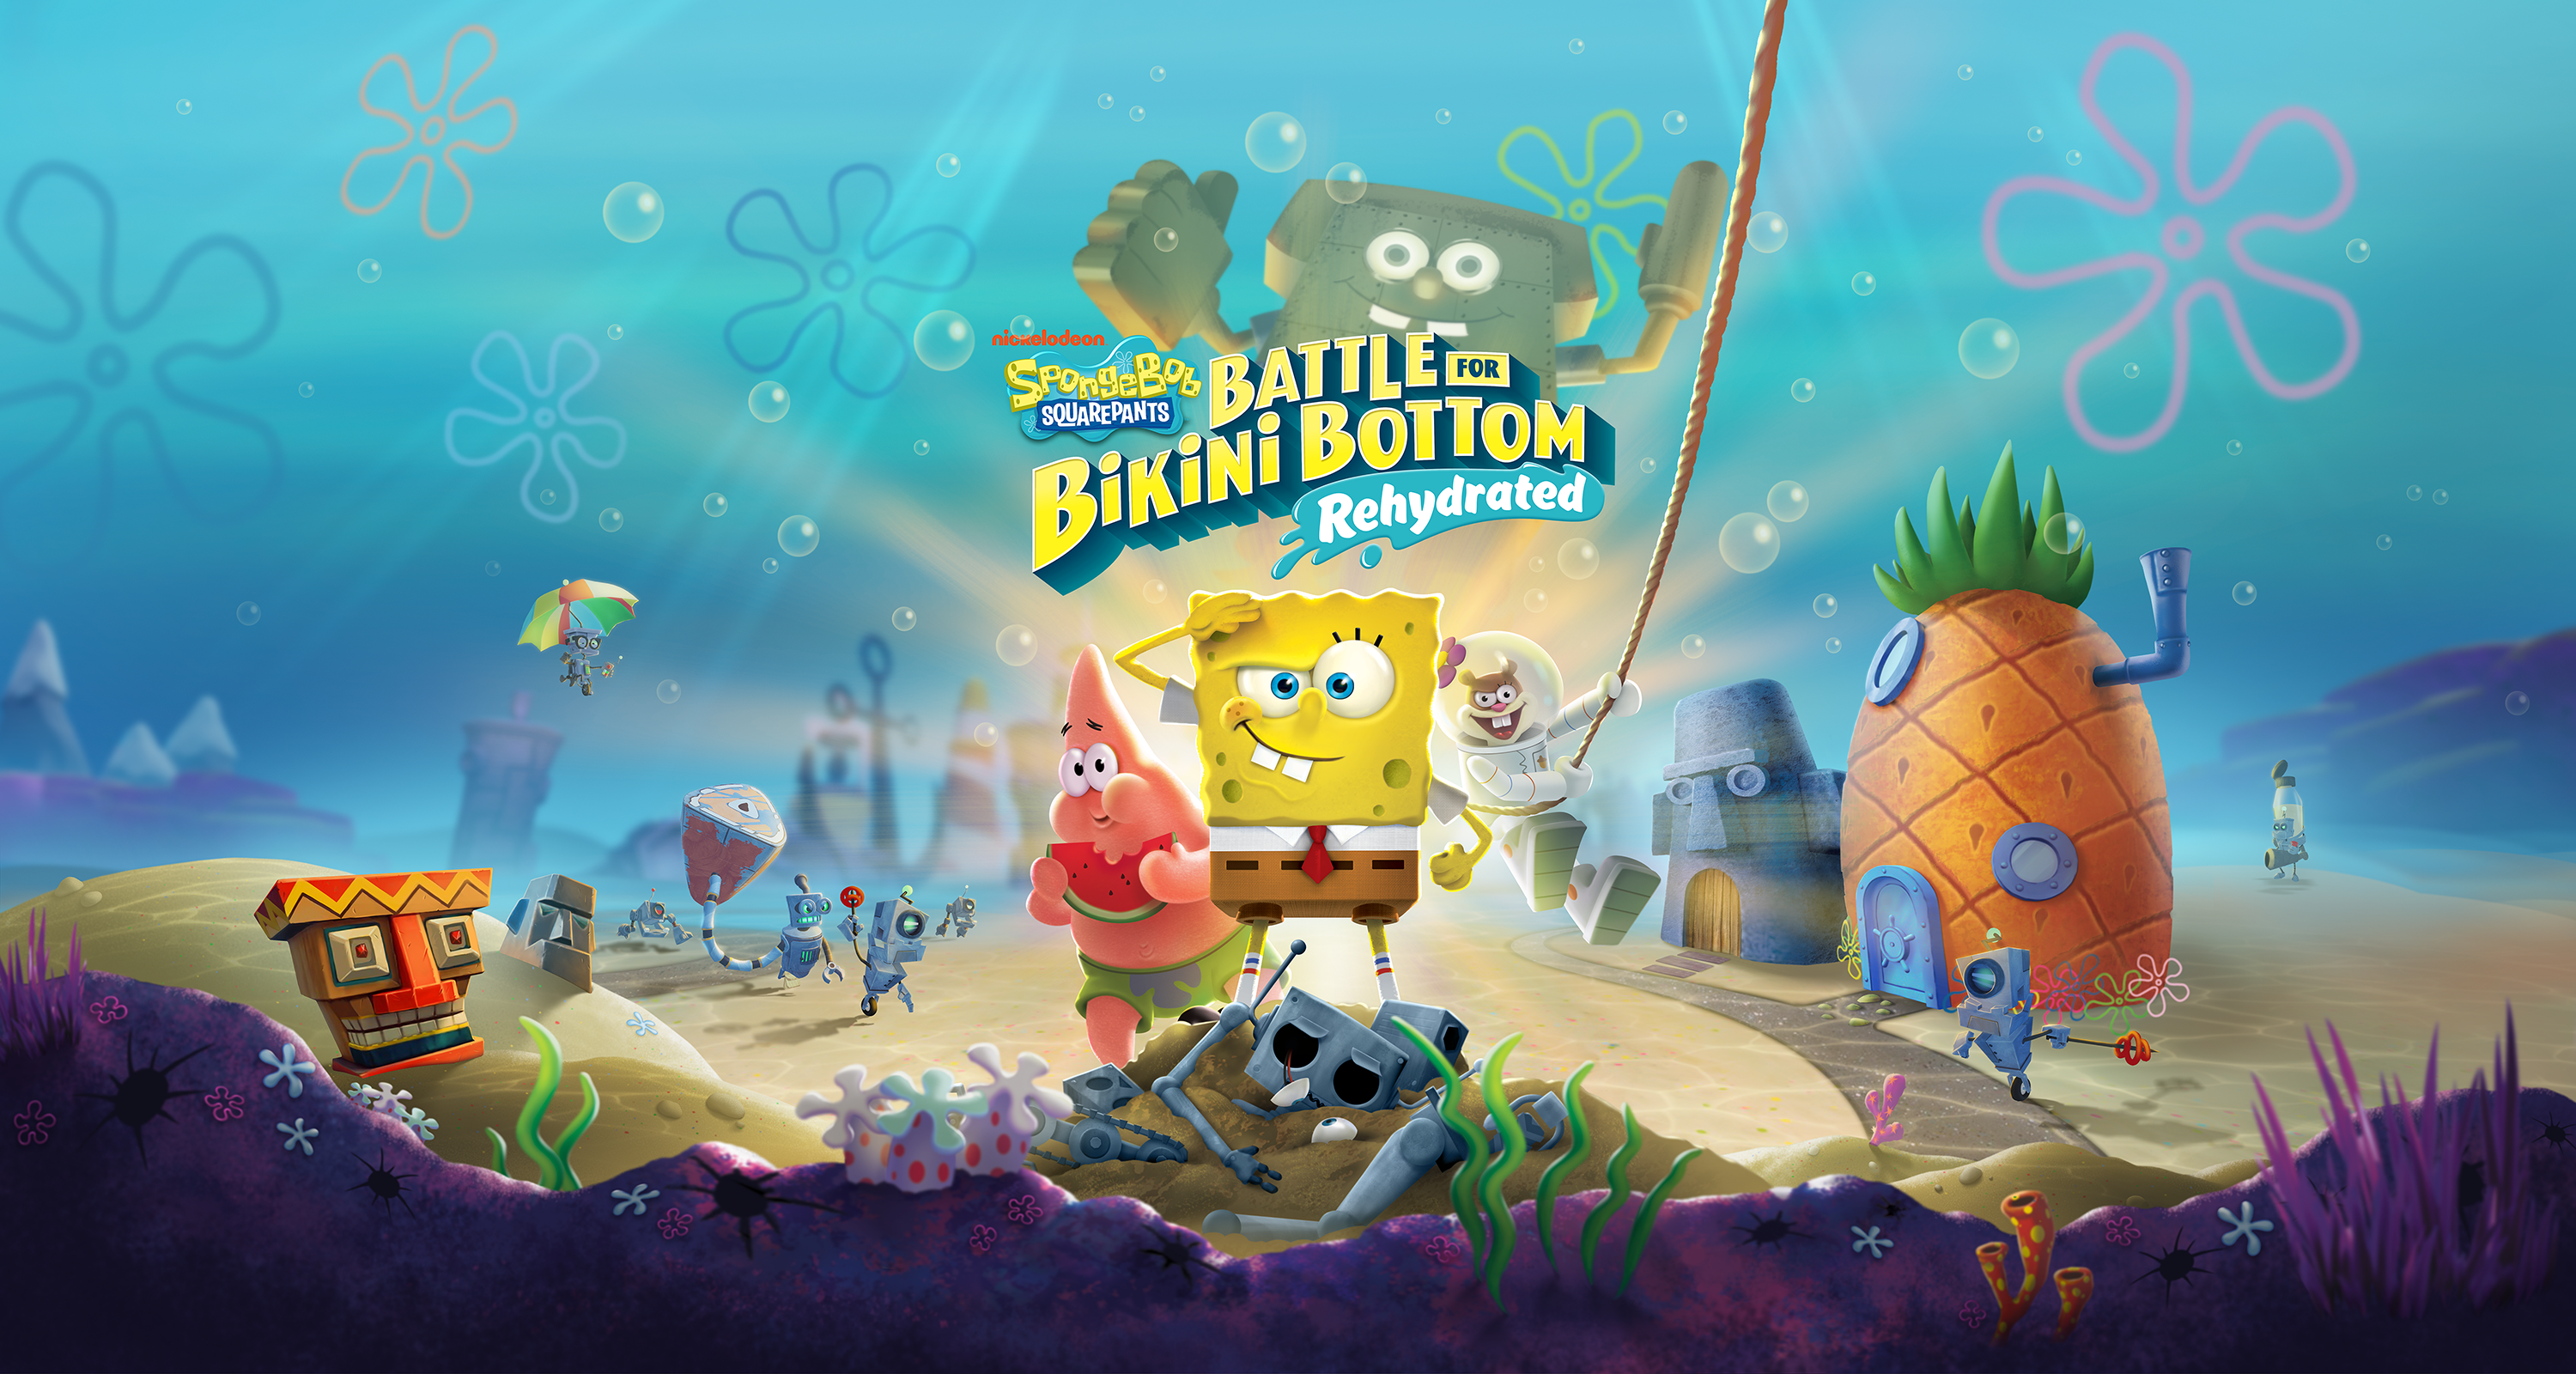 Battle for Bikini Bottom - Rehydrated/gallery